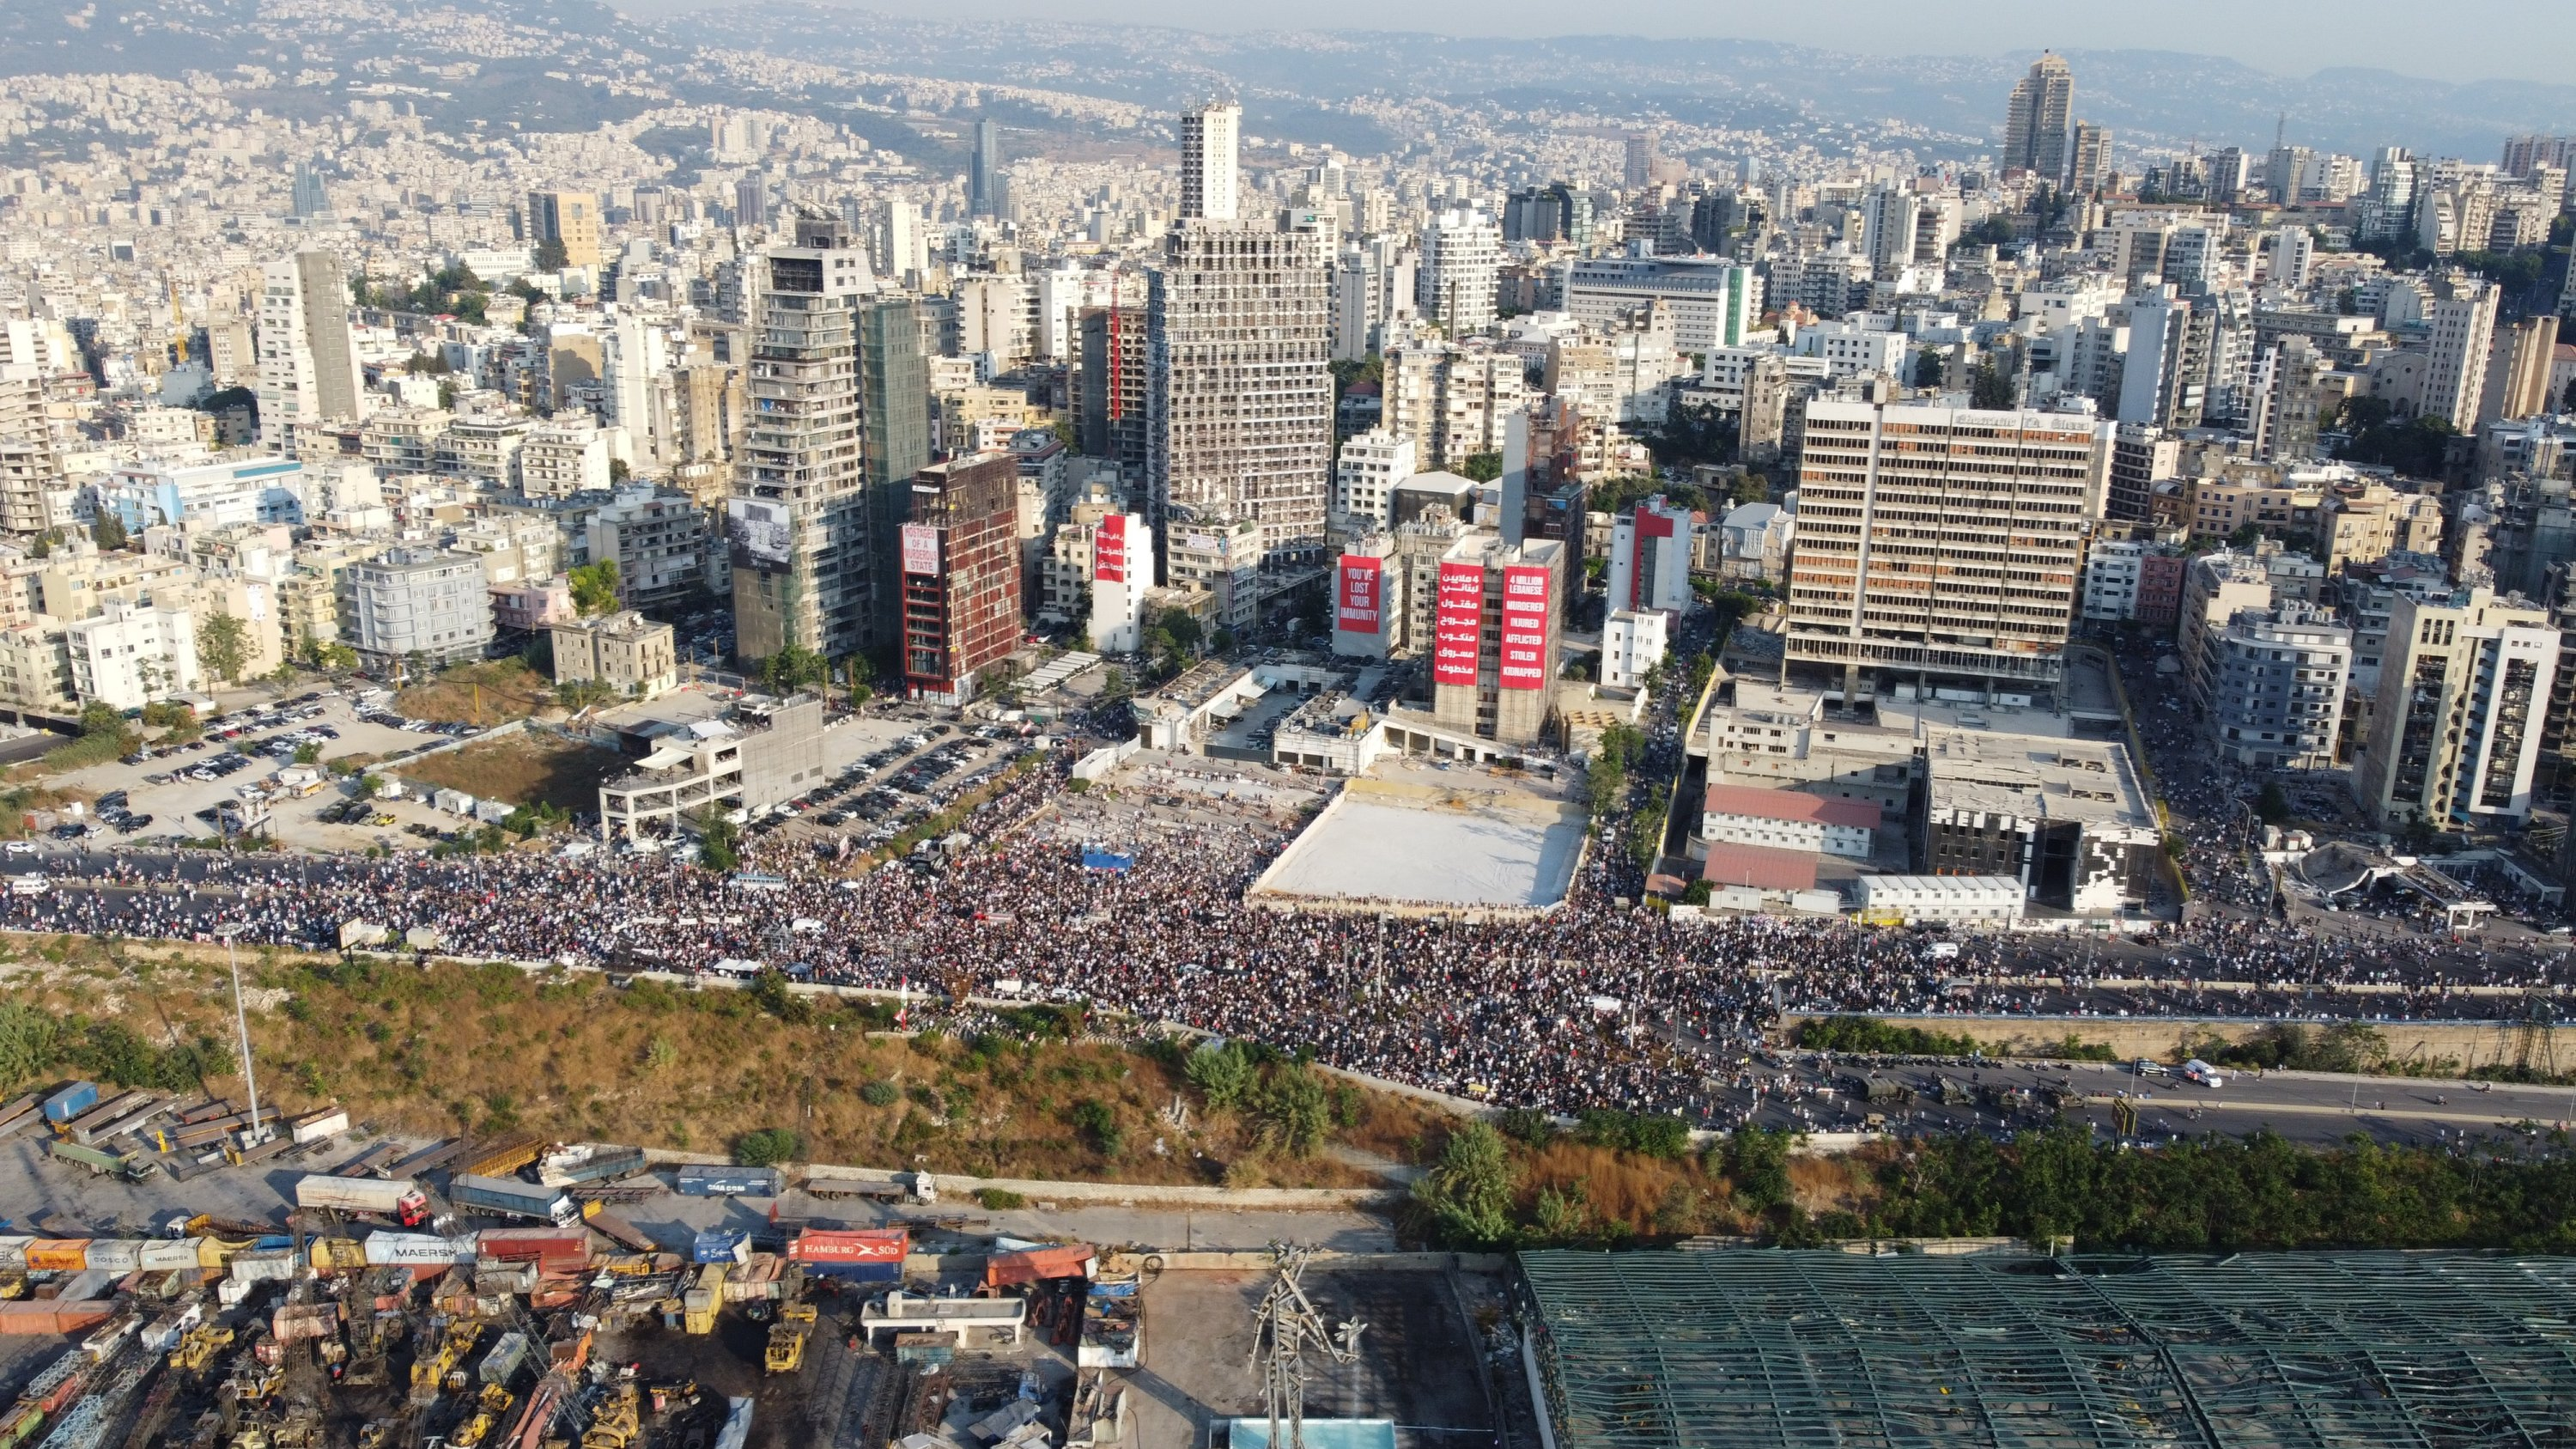 Protesters march in Beirut, Lebanon, Aug. 4, 2021. (Photo courtesy of Jean Michel Habis)